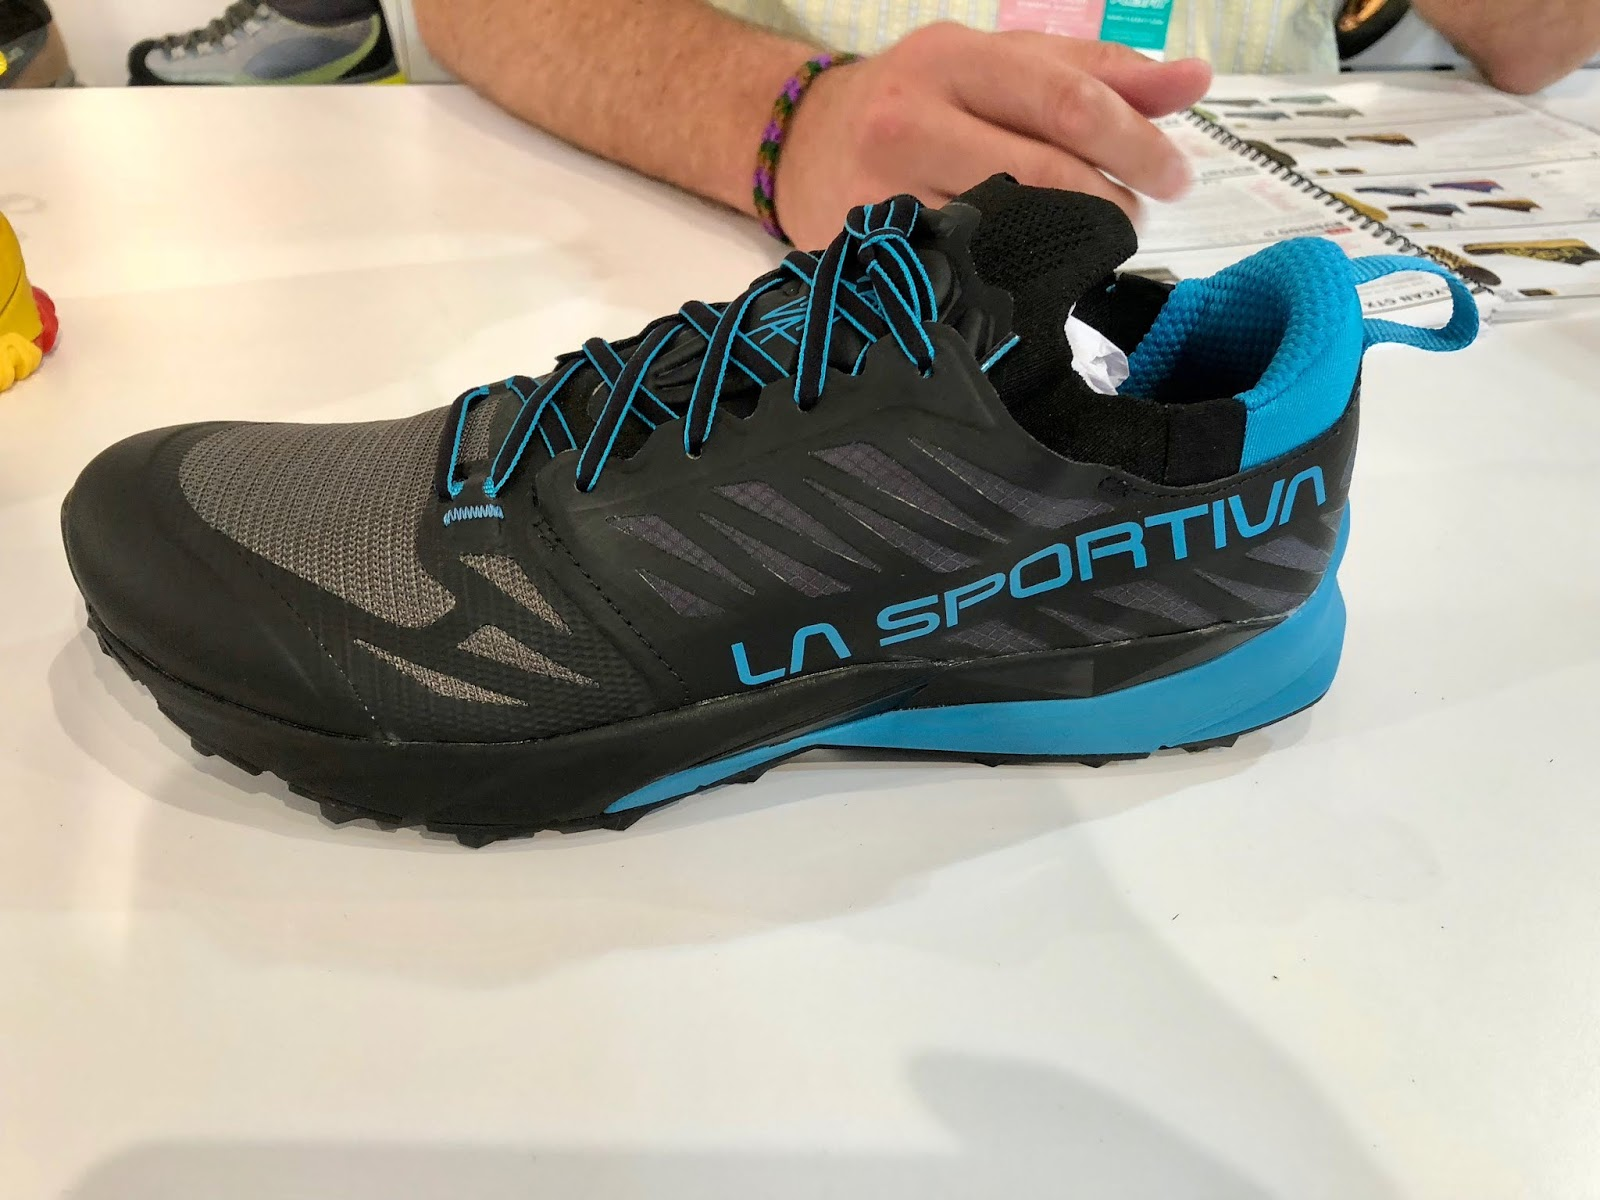 59cdc2d5452 The Kaptiva is a new light weight trail runner racer with 4-5mm all terrain  lugs and a full length EVA rock guard. It is built on a new last.